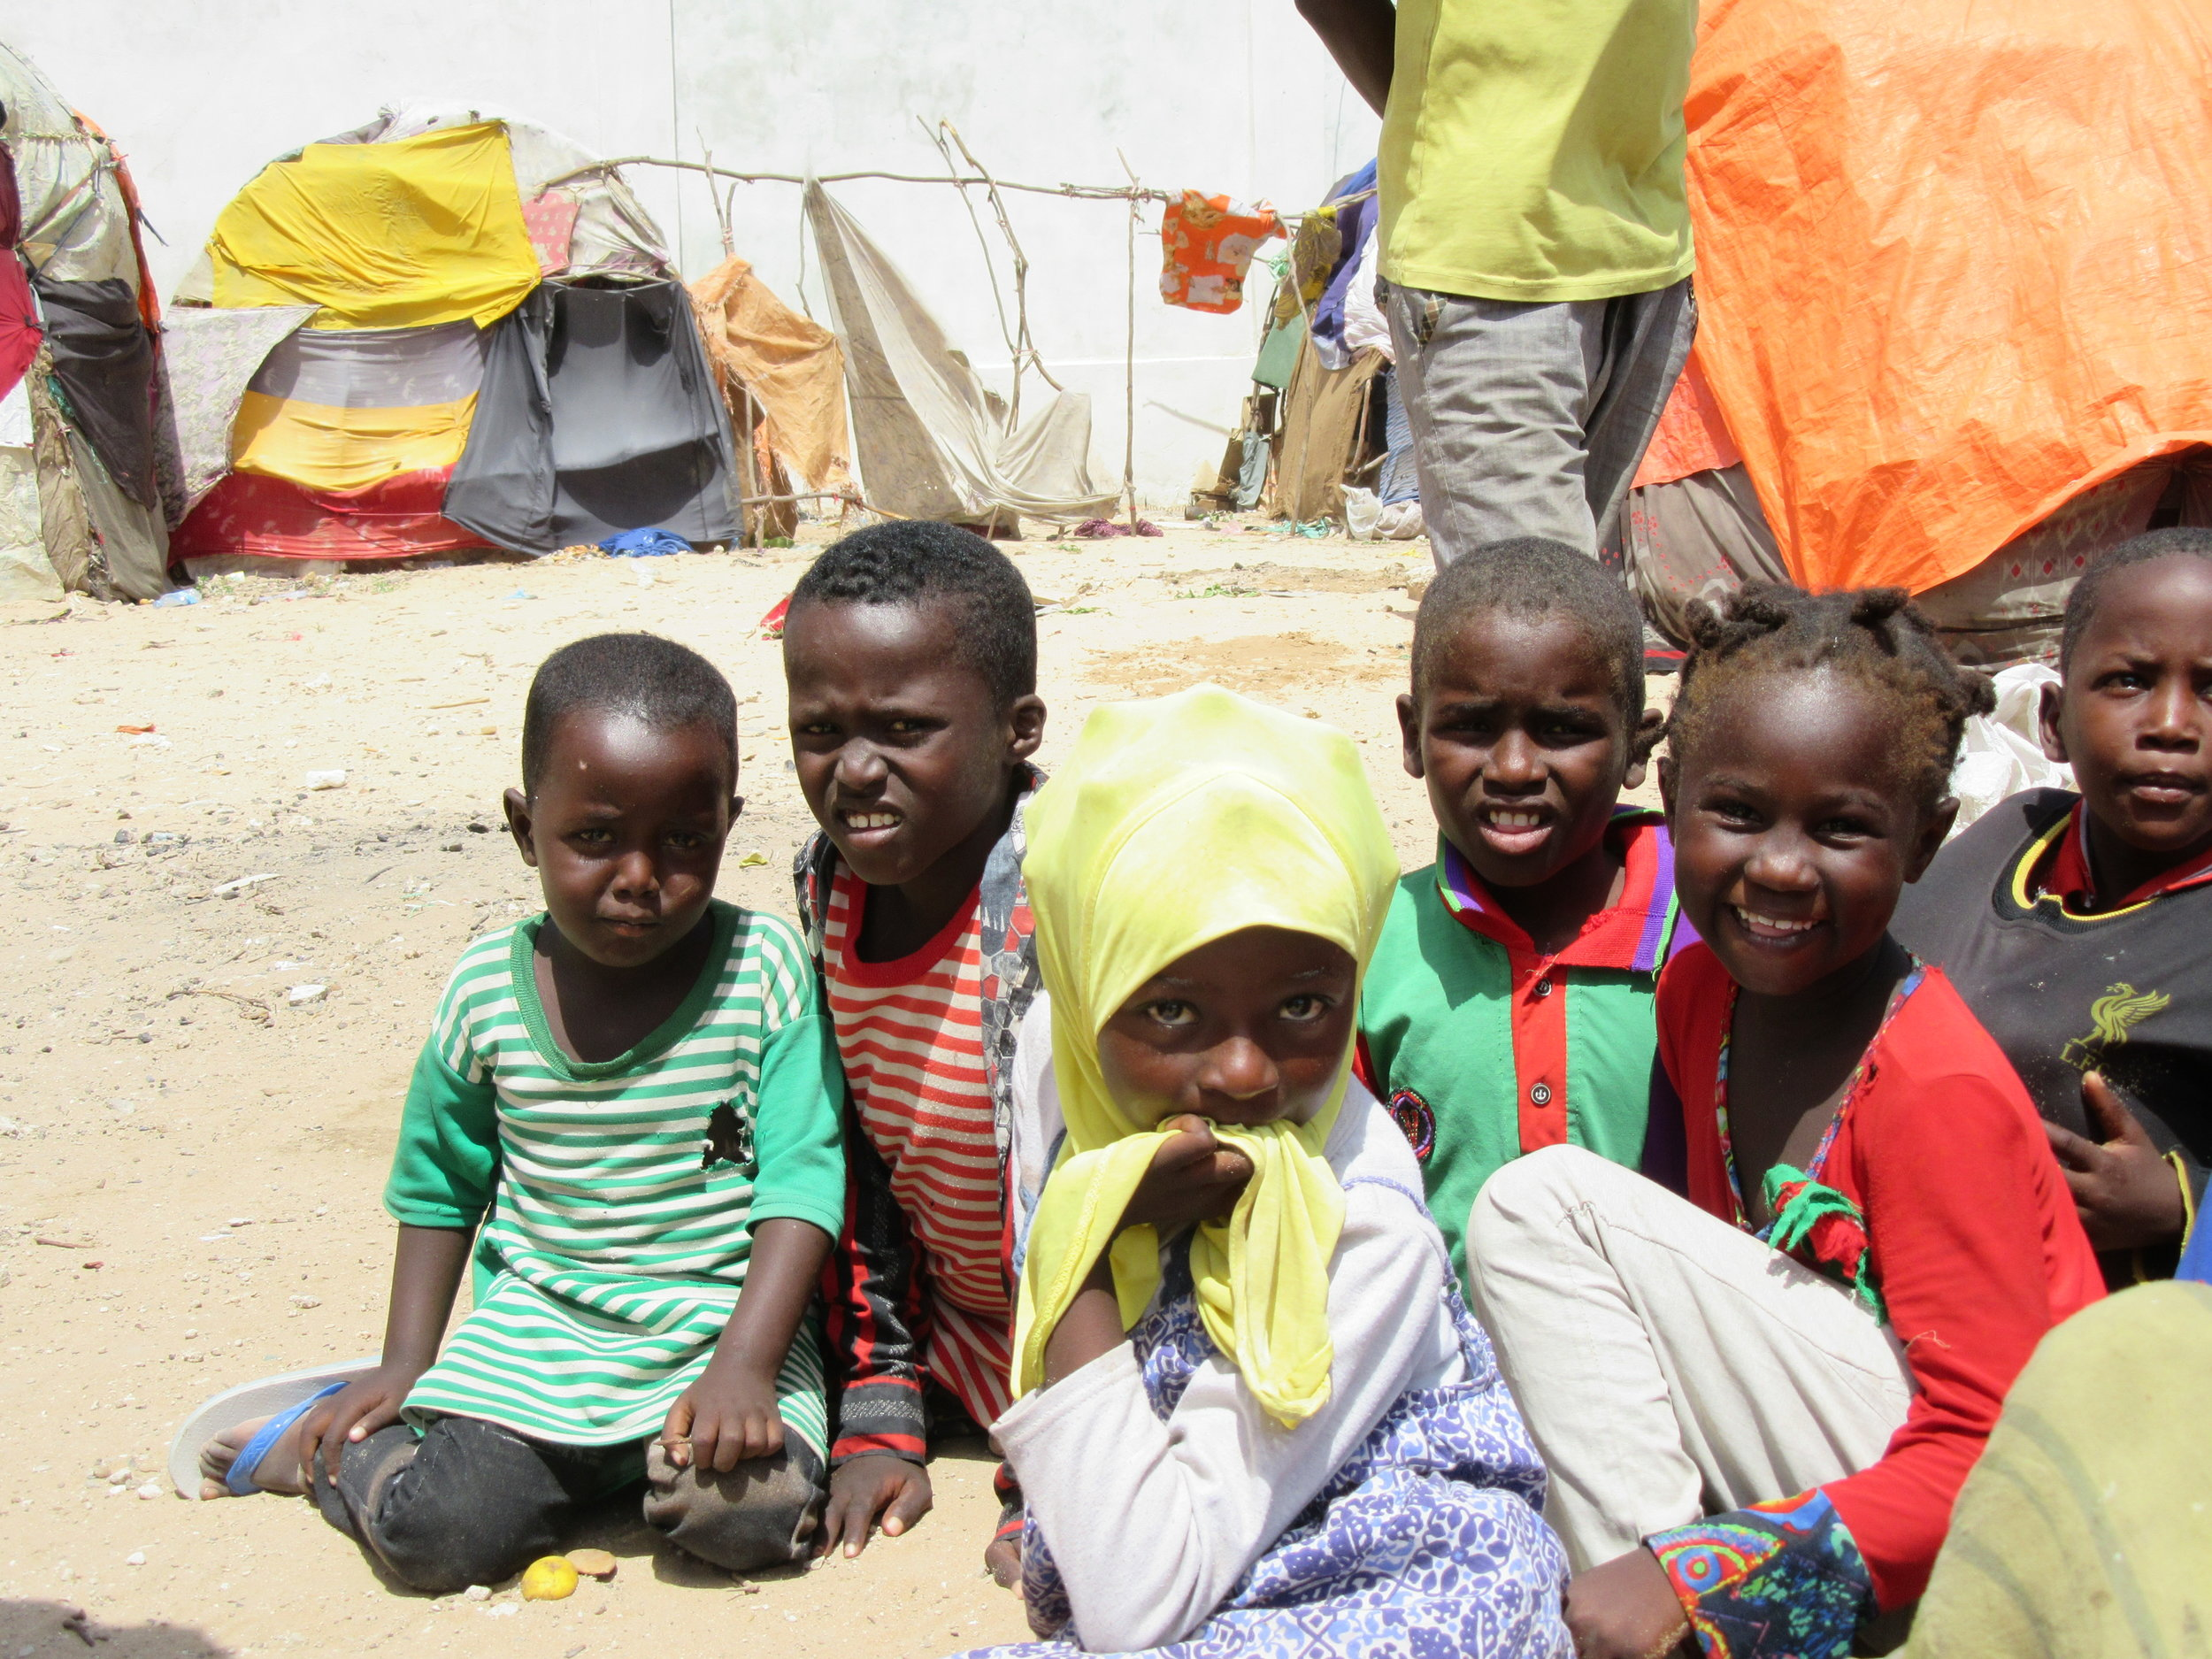 Many of the IDPs are young children and have no access to education or child-friendly spaces.